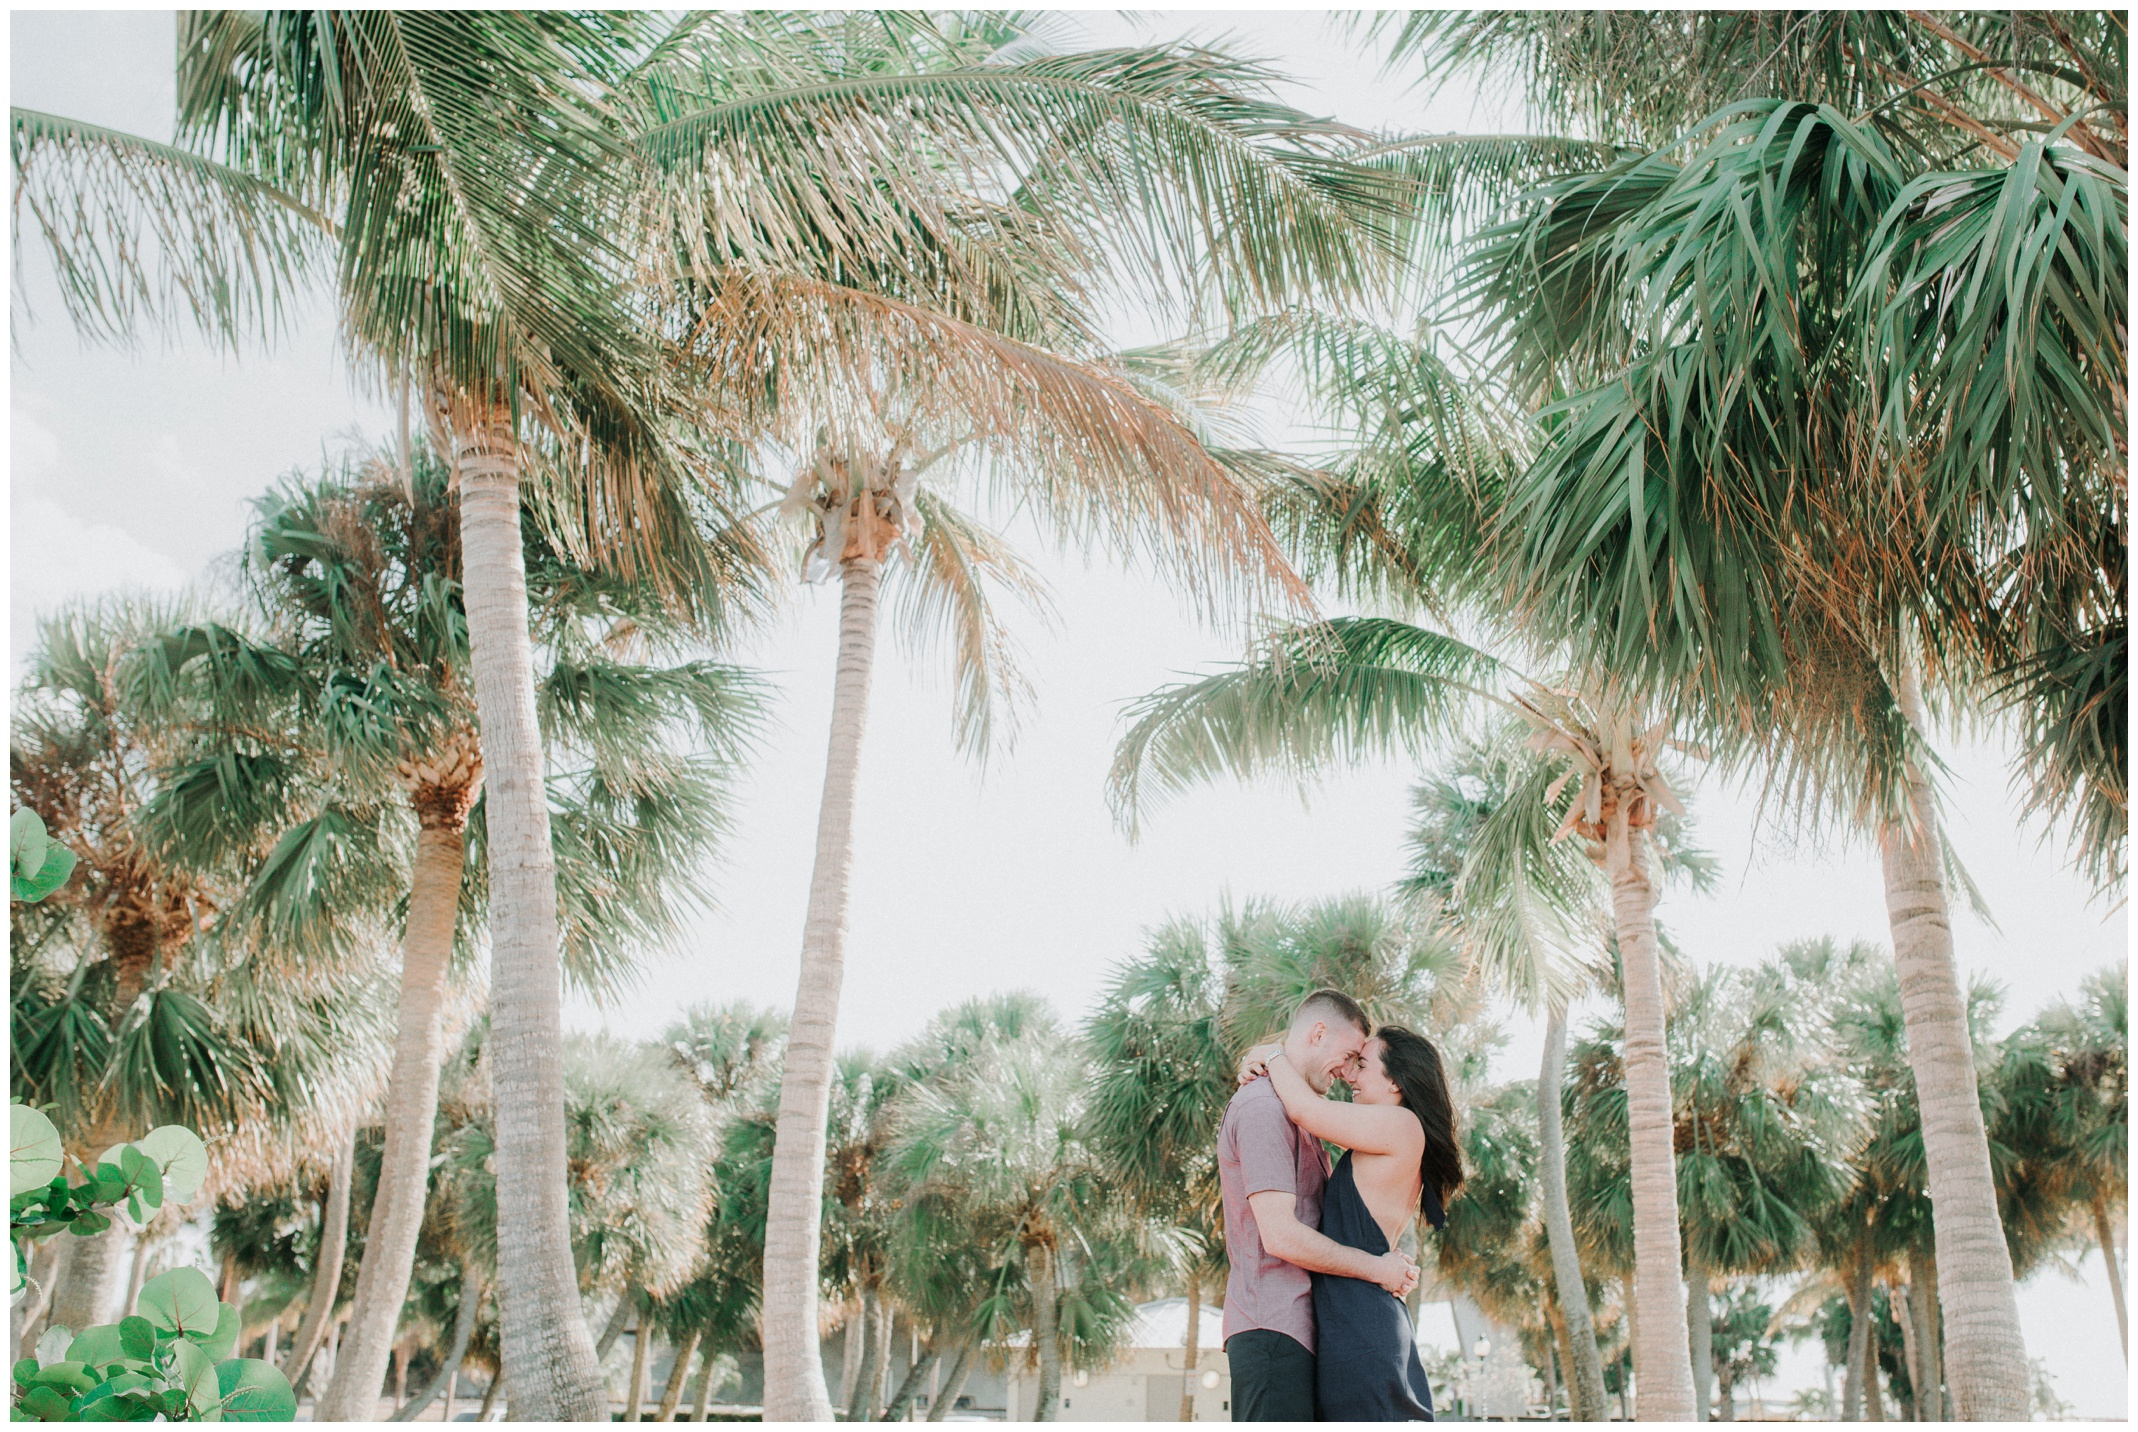 palm-trees-florida-engagement-downtown-stuart-florida-kimberly-smith-photography-south-florida-wedding-photographer